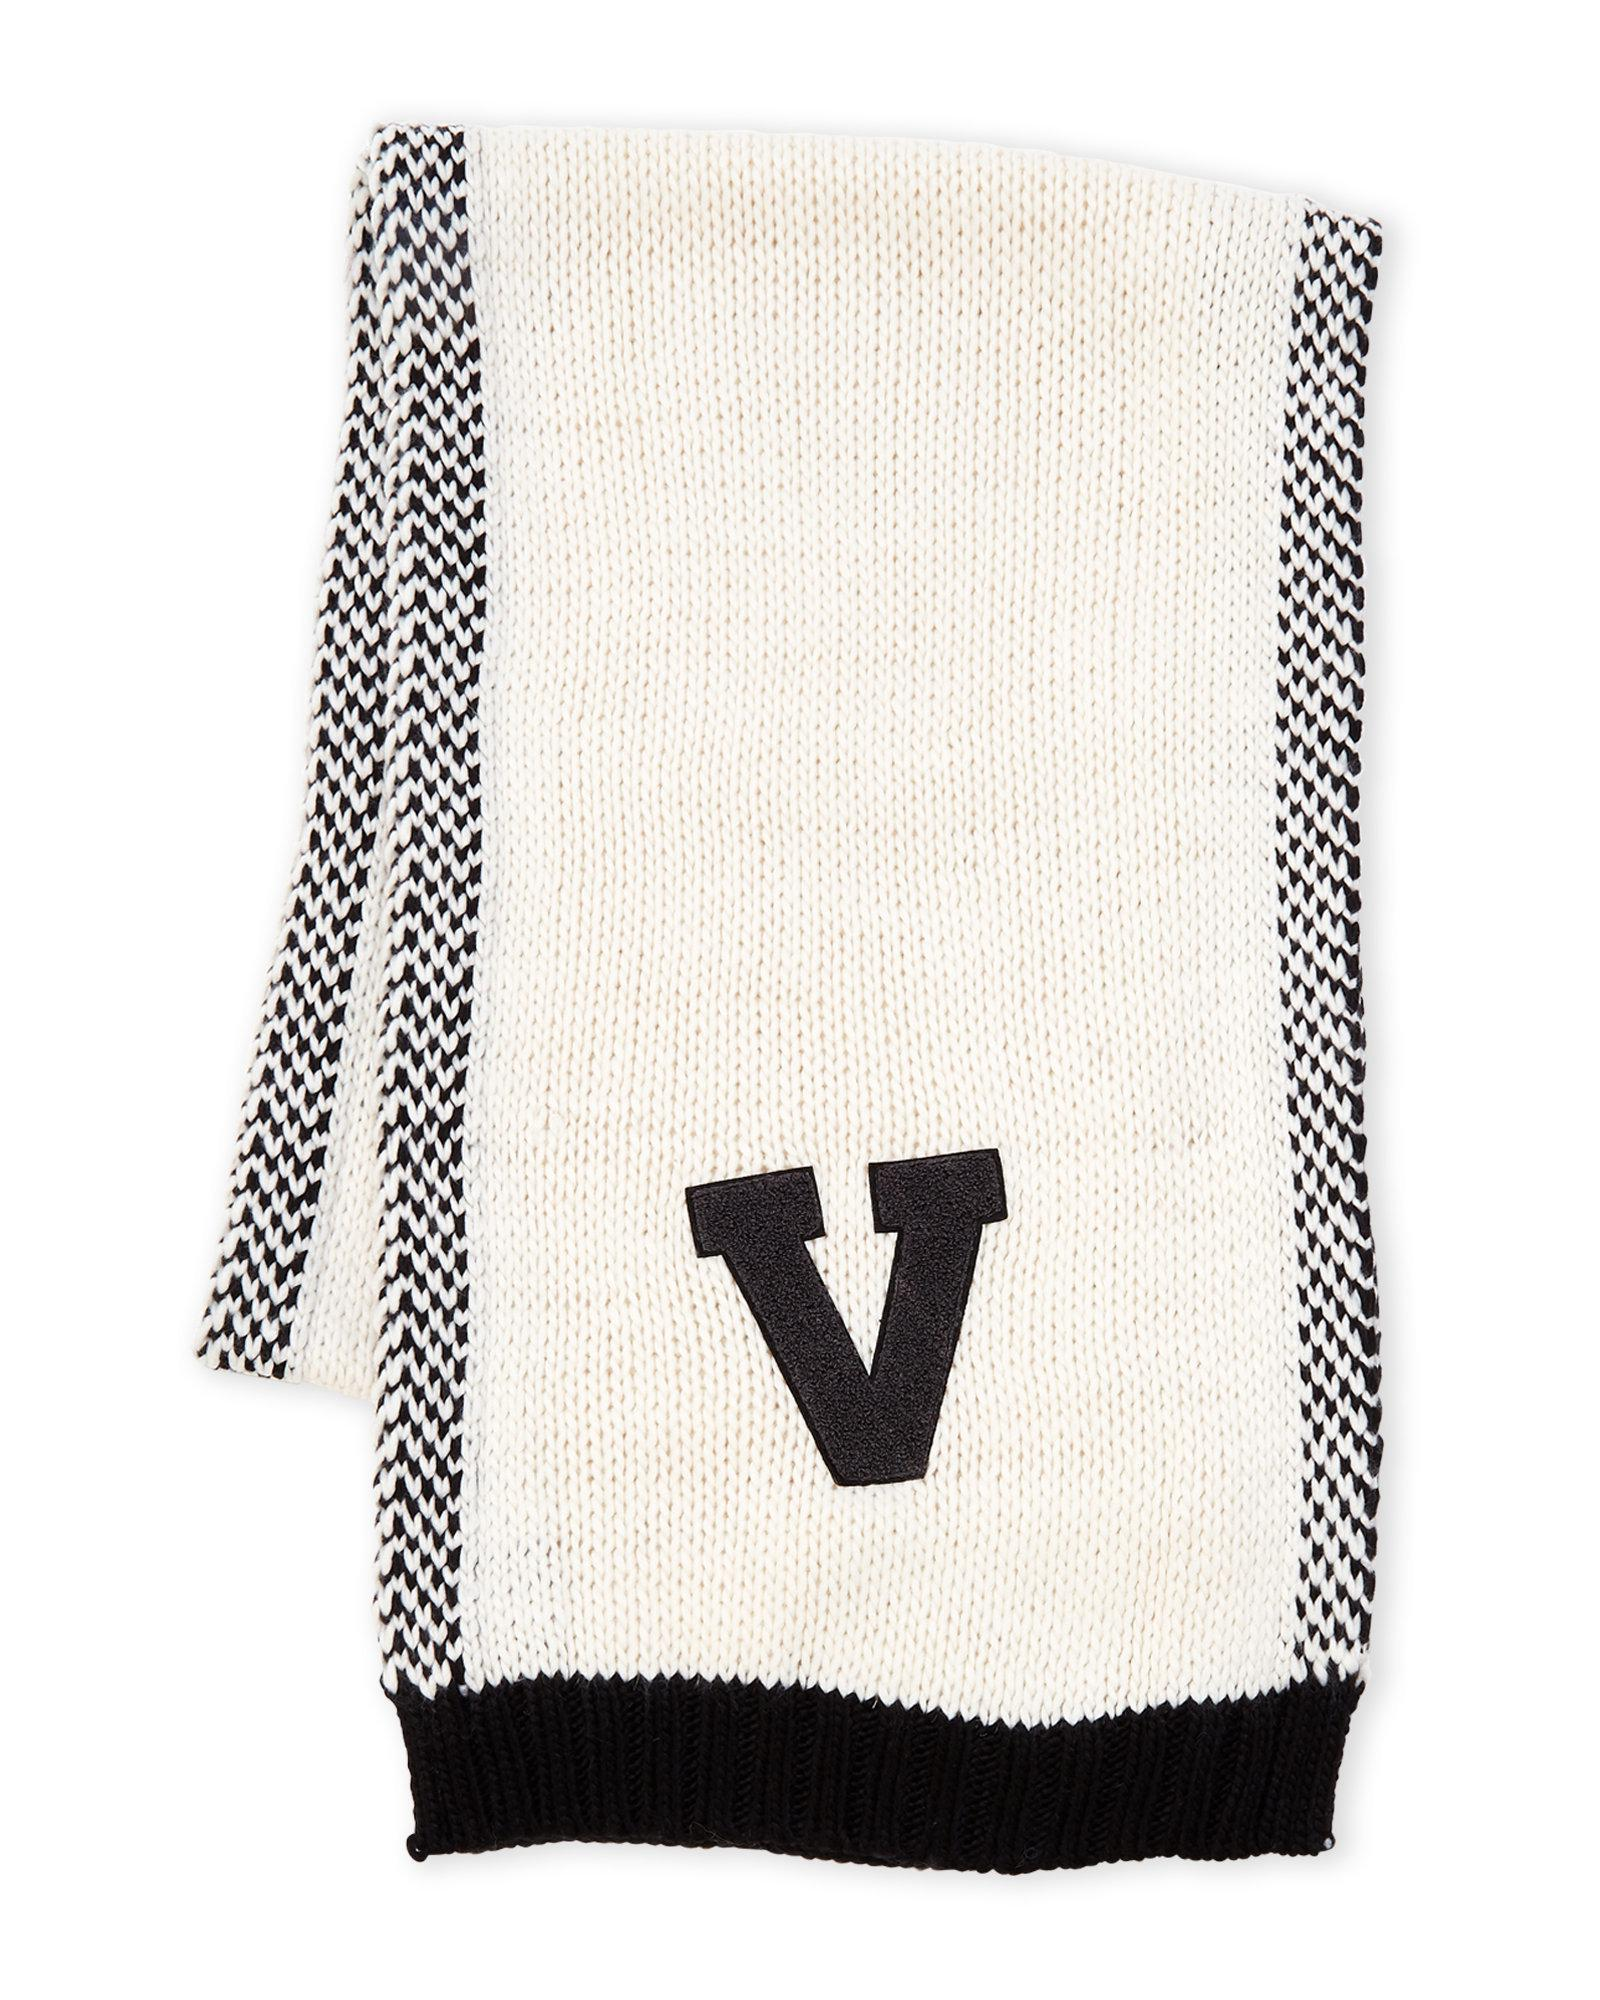 56cee3d61416b Lyst - Vince Camuto Varsity Knit Scarf in Black